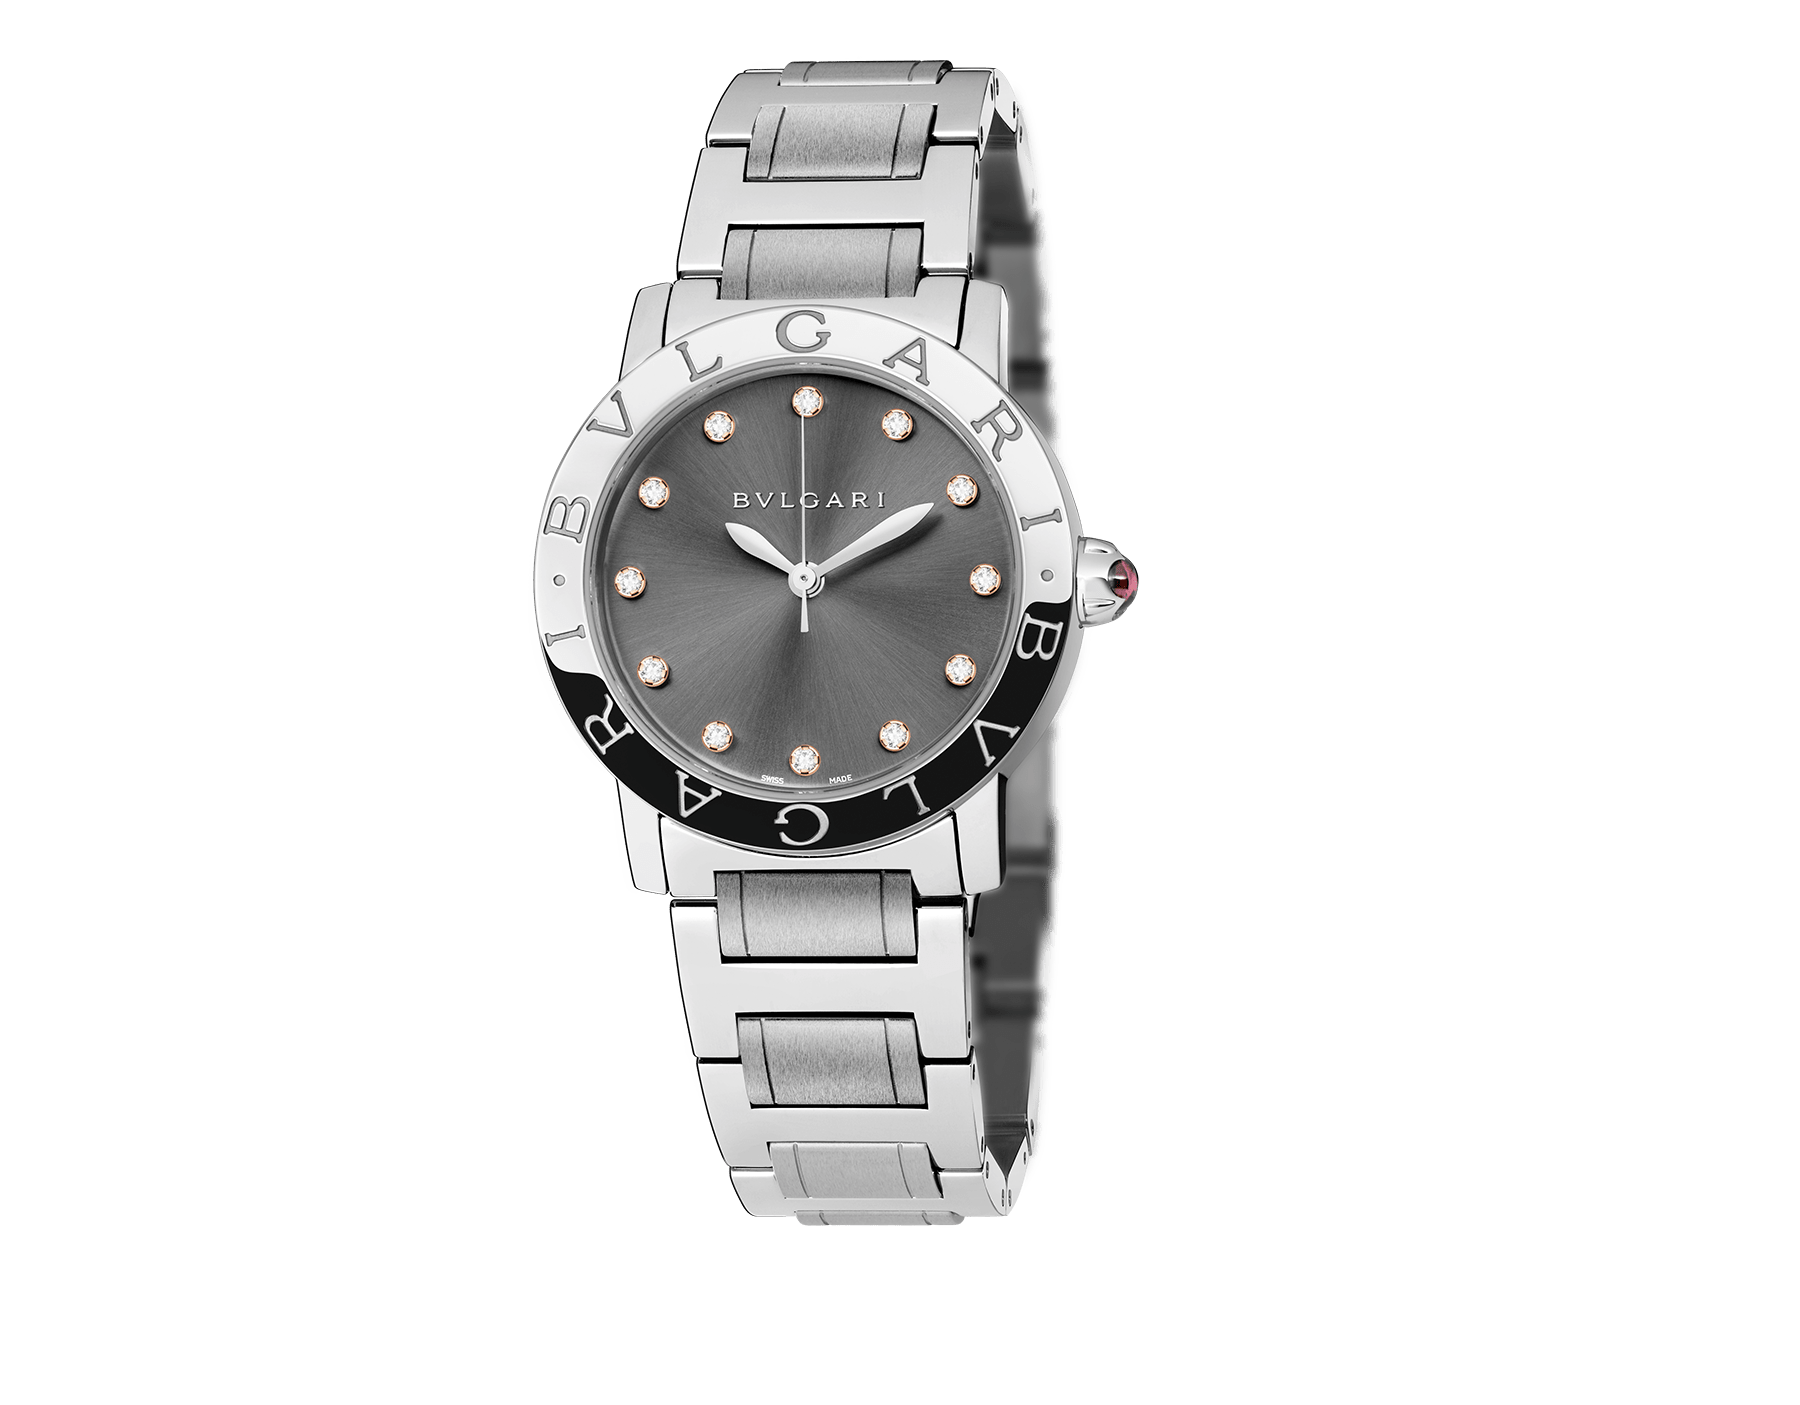 BVLGARI BVLGARI watch in stainless steel case and bracelet, with anthracite satiné soleil lacquered dial and diamond indexes 102567 image 1